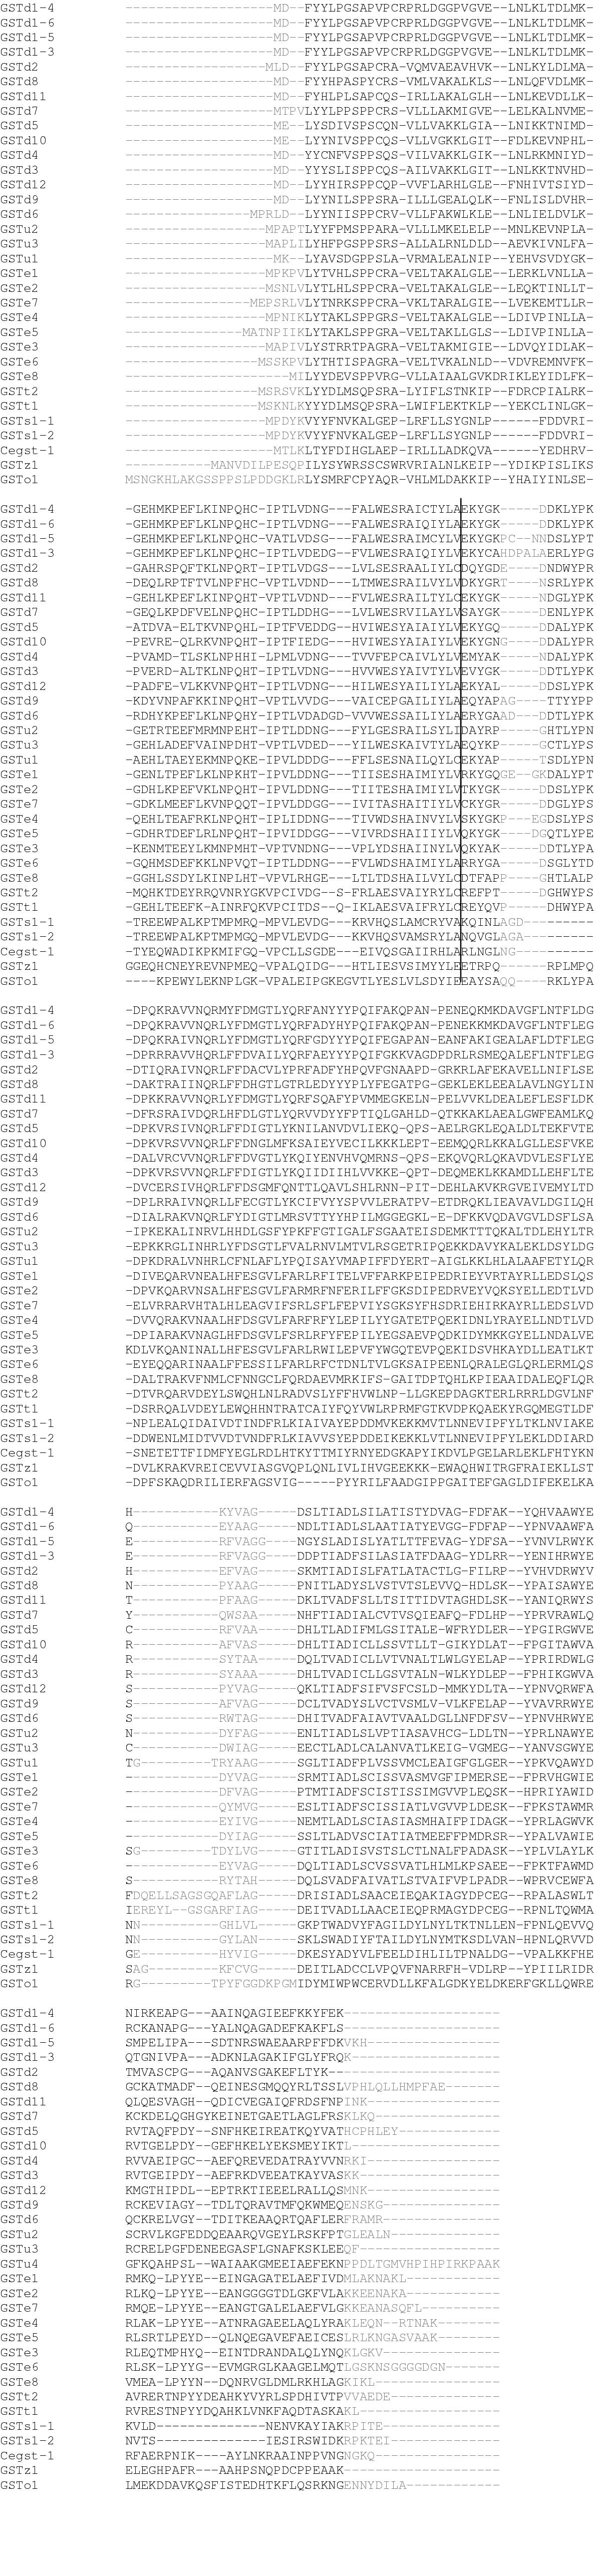 https://static-content.springer.com/image/art%3A10.1186%2F1471-2164-4-35/MediaObjects/12864_2003_Article_84_Fig1_HTML.jpg